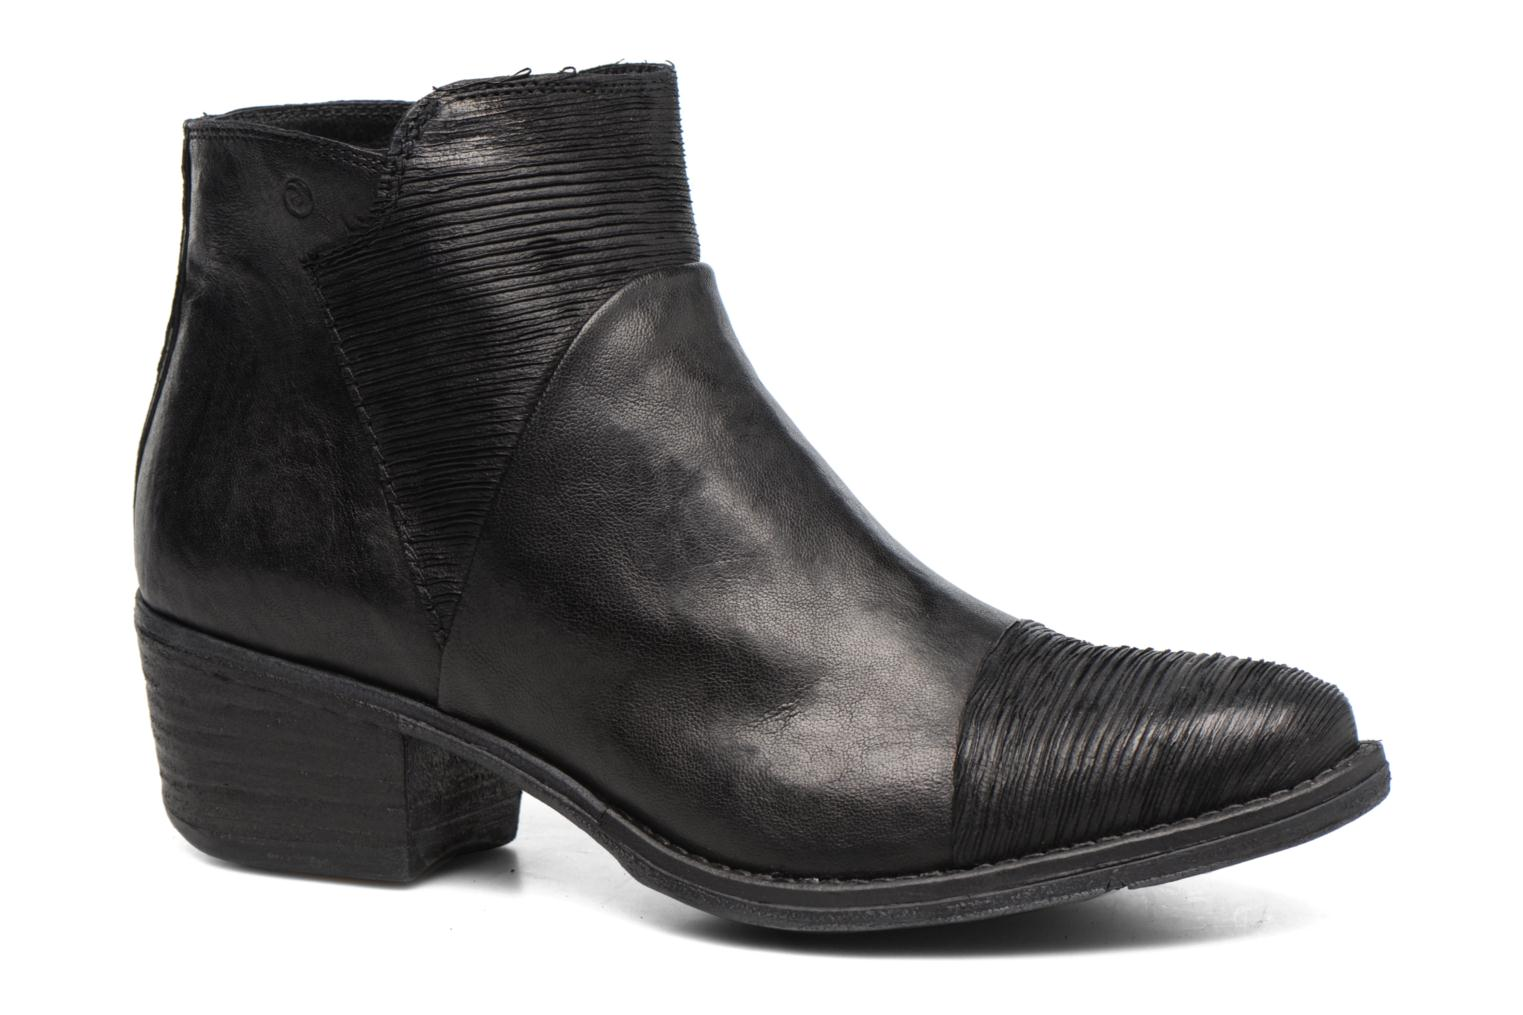 Marques Chaussure femme Khrio femme Belal Rodeo nero